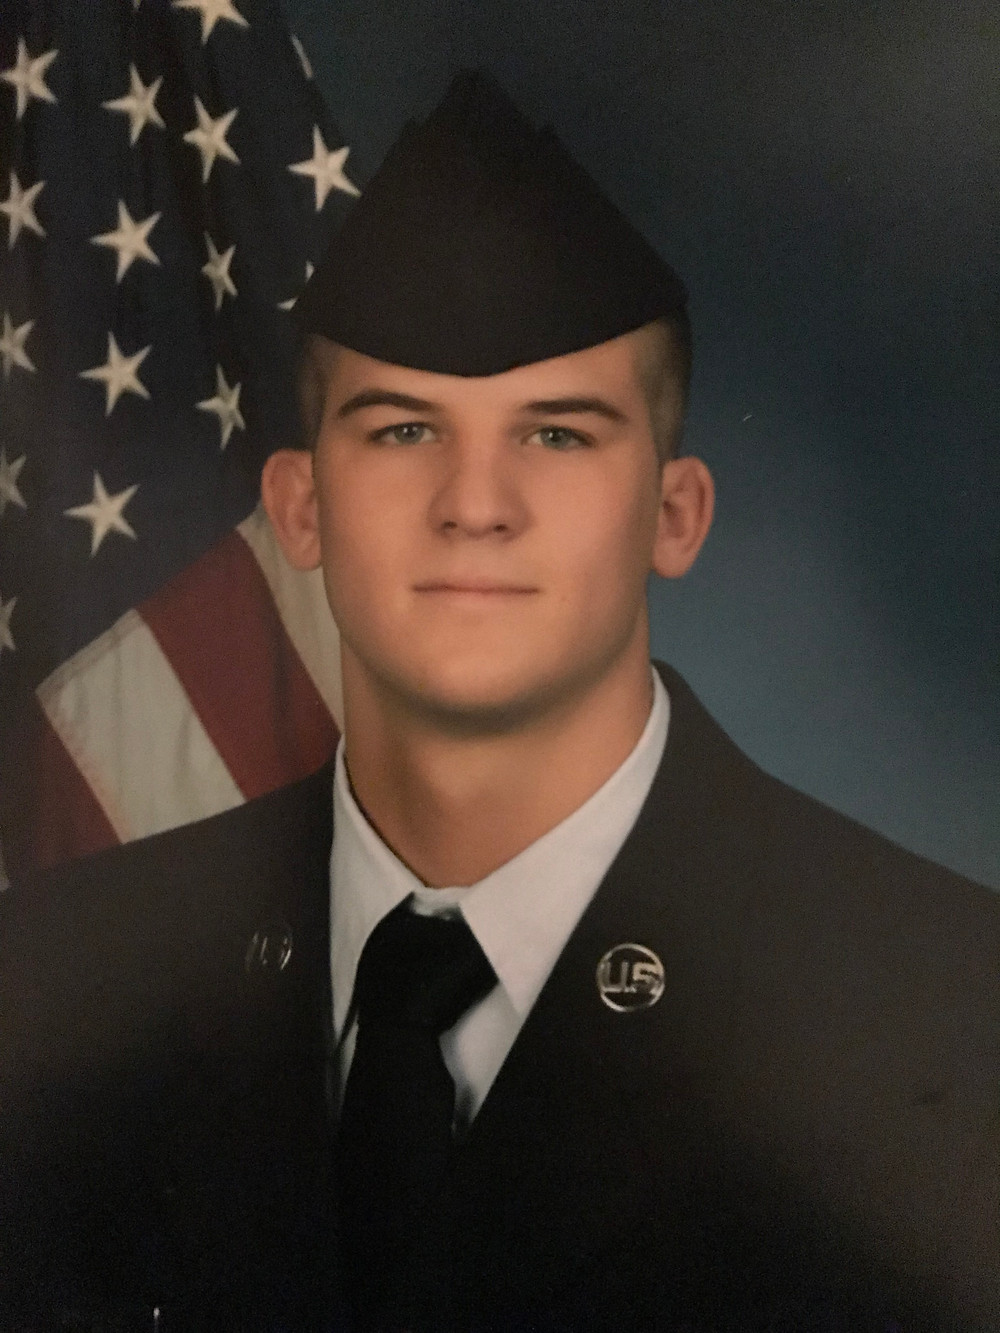 WCHS GRADUATE JOEY ROBERTS is training in Colorado Springs, Co. for a spot on the Air Force wrestling team. (Photo submitted)